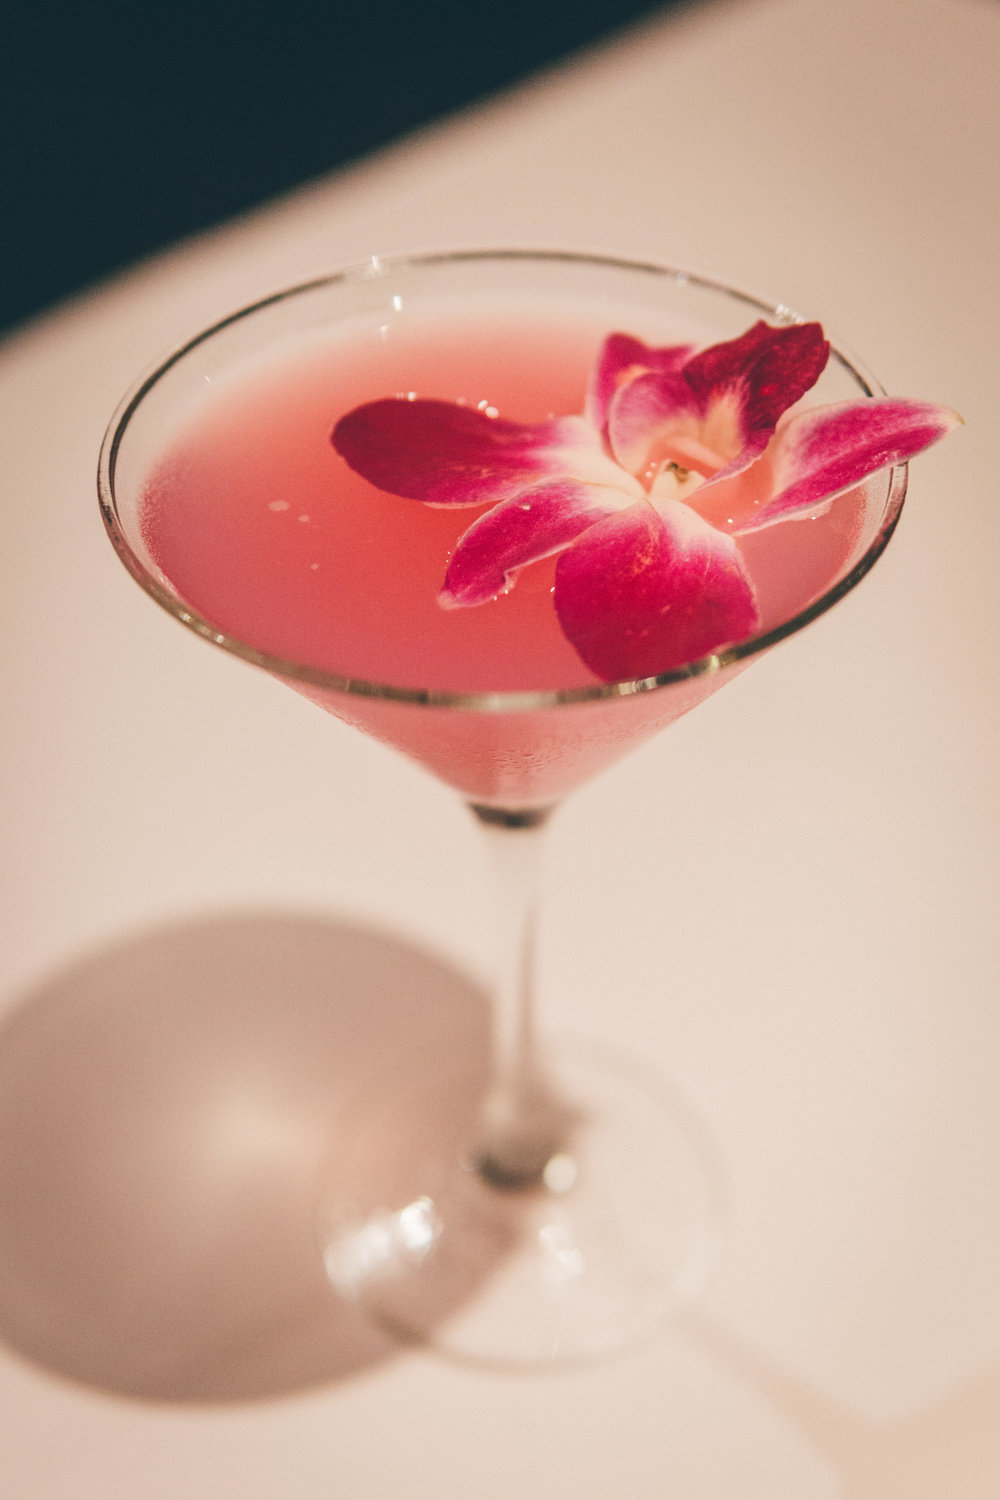 Wild Orchid Hawaiian Martini: Cruzan Guava rum, pineapple juice, Zico coconut water and desert pear and coconut flavors, finished with a floating edible orchid